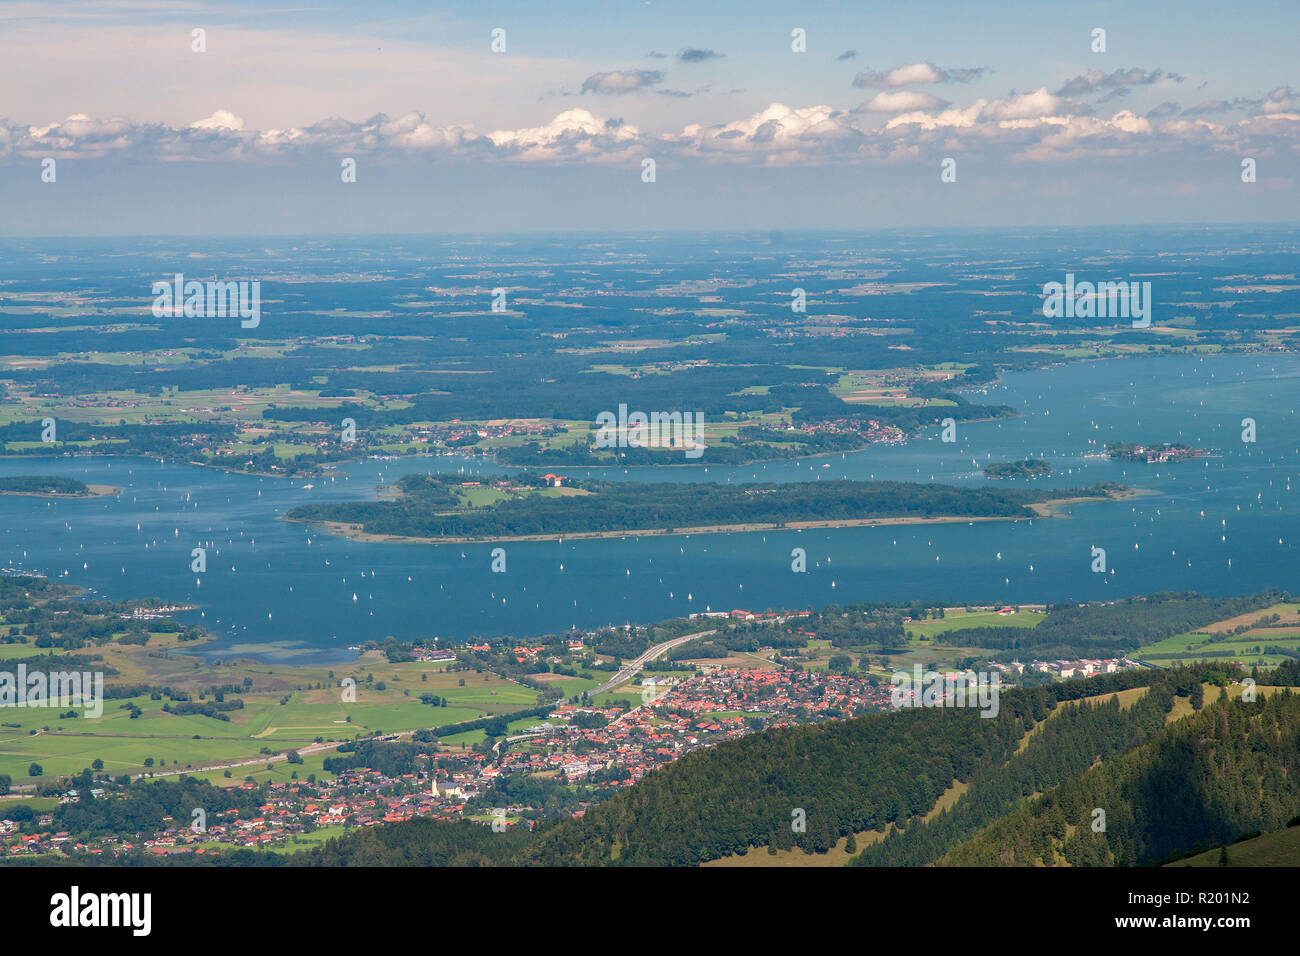 Lake Chiemsee with Herreninsel, Krautinsel und Fraueninsel seen from the mountain Kampenwand. Bavaria, Germany - Stock Image